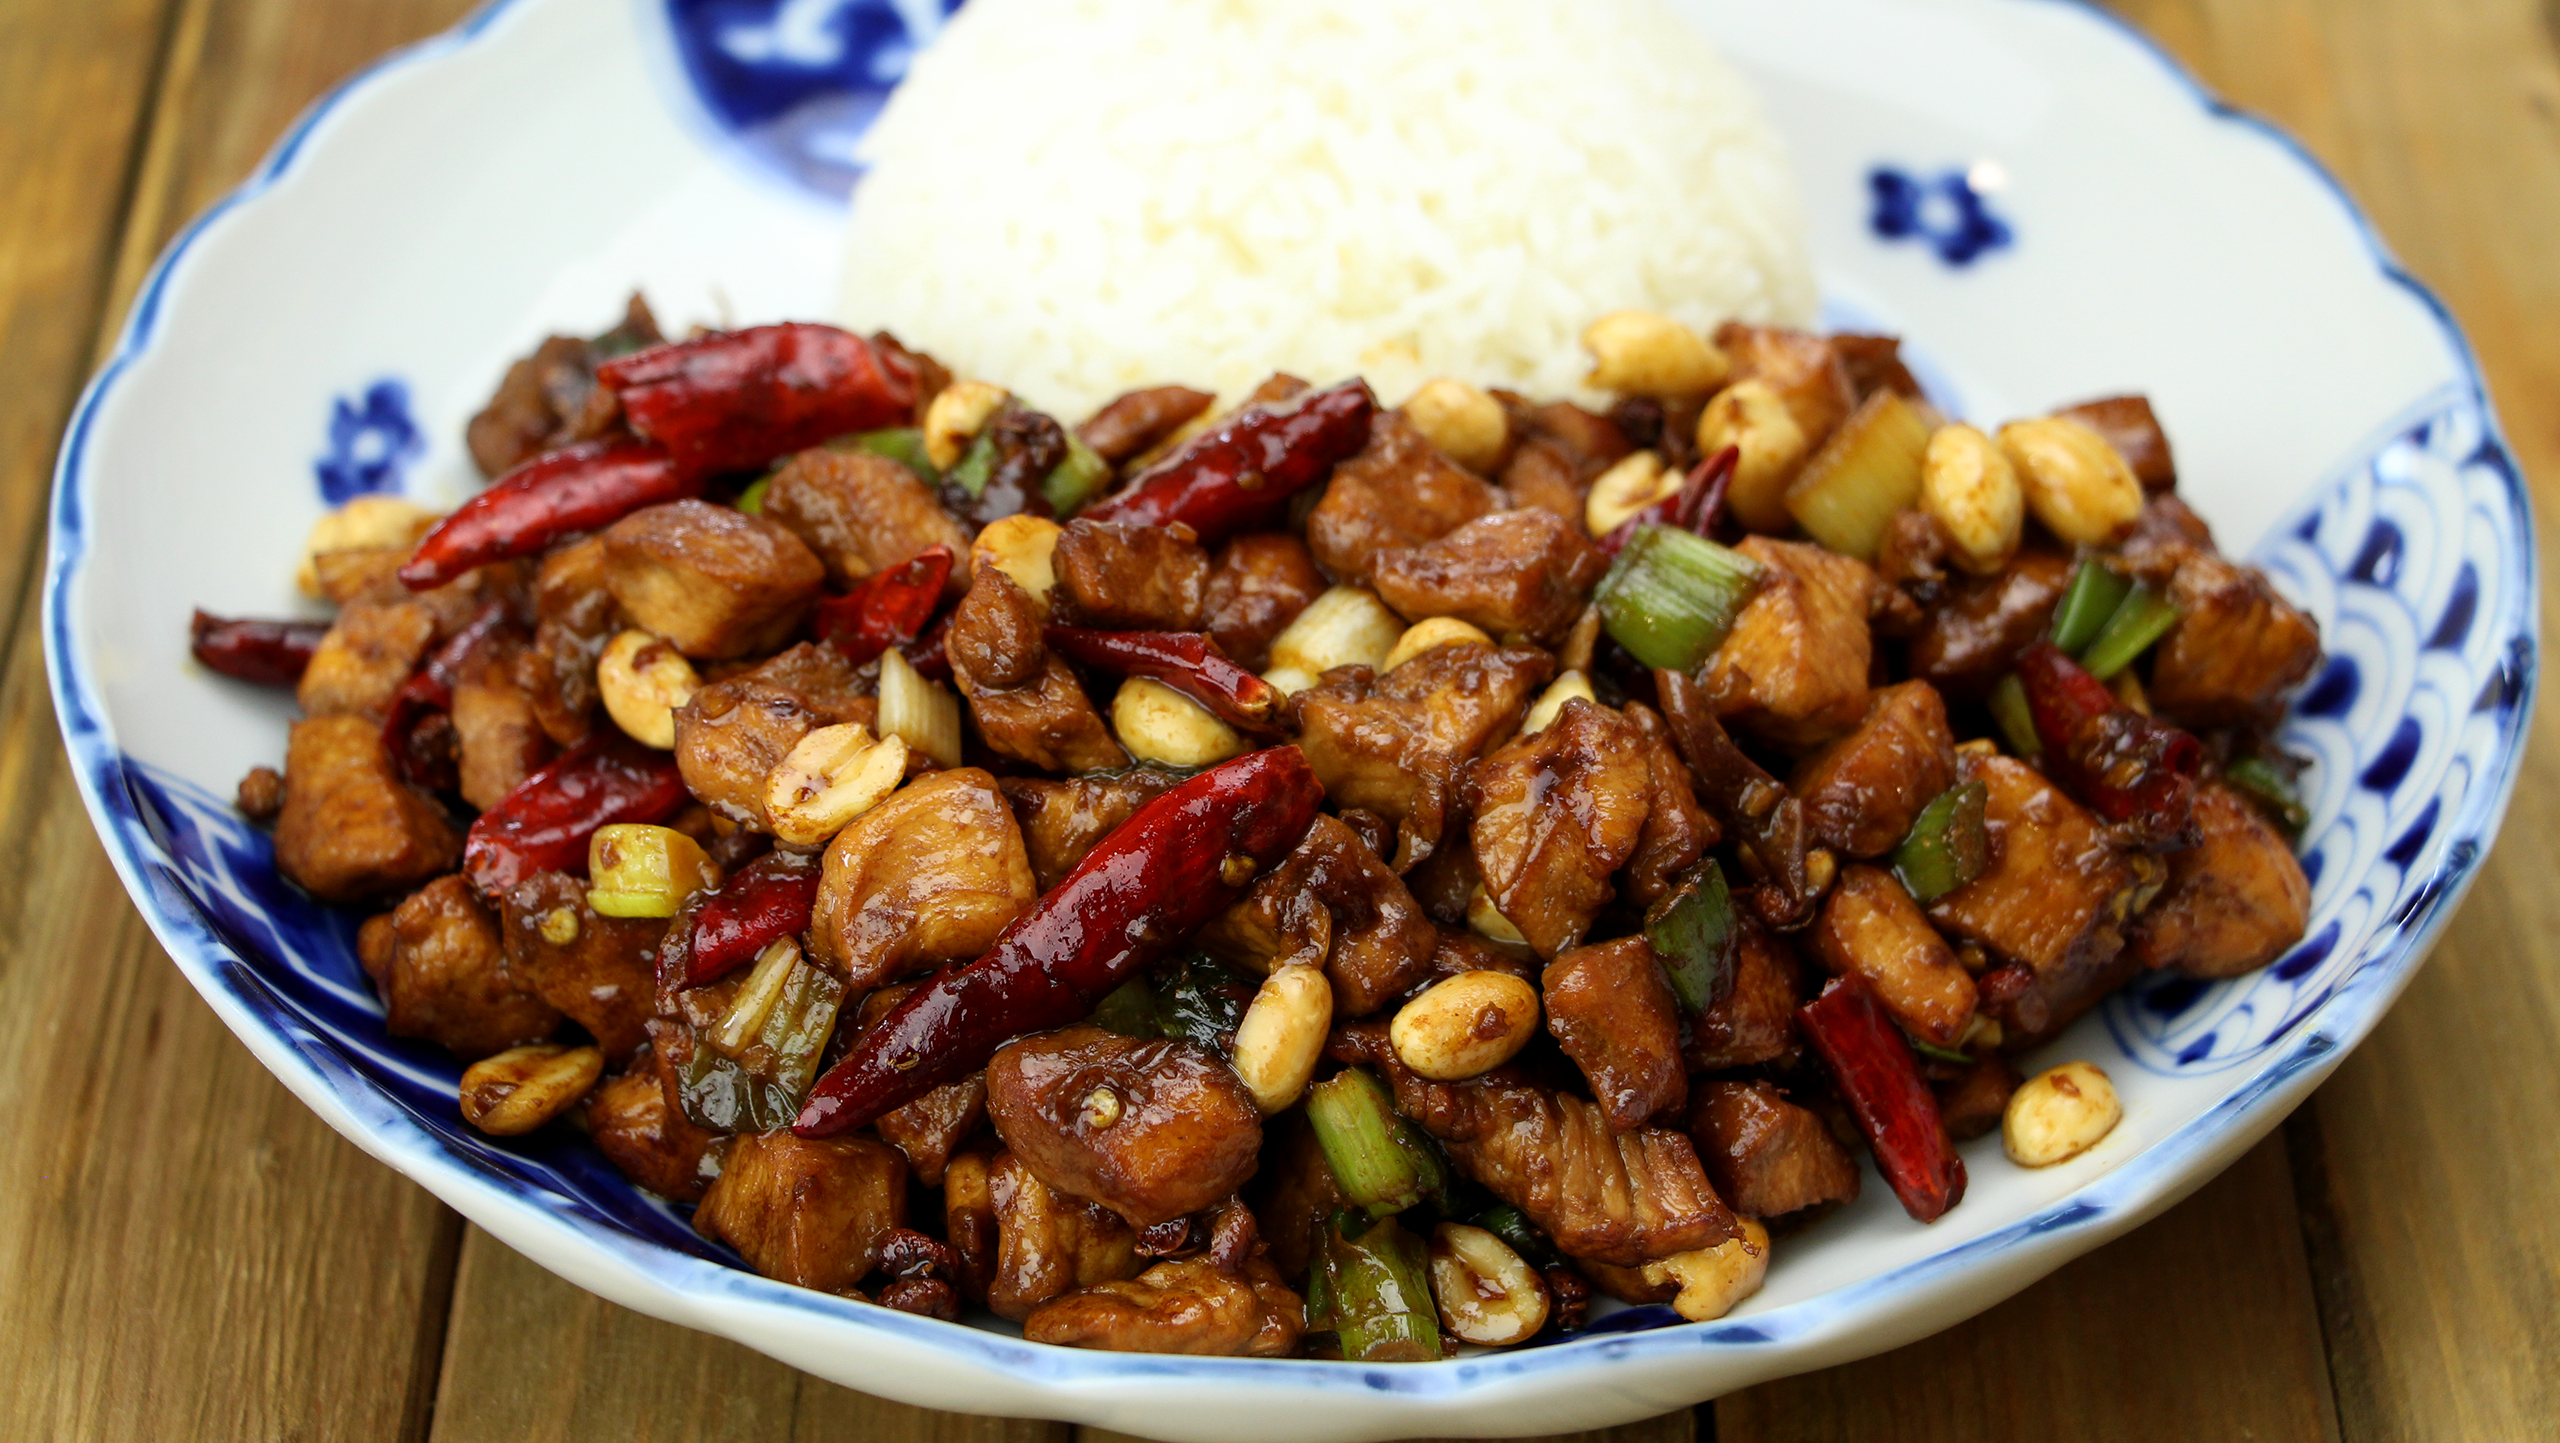 Kung pao chicken peanuts recipe – Food ideas recipes